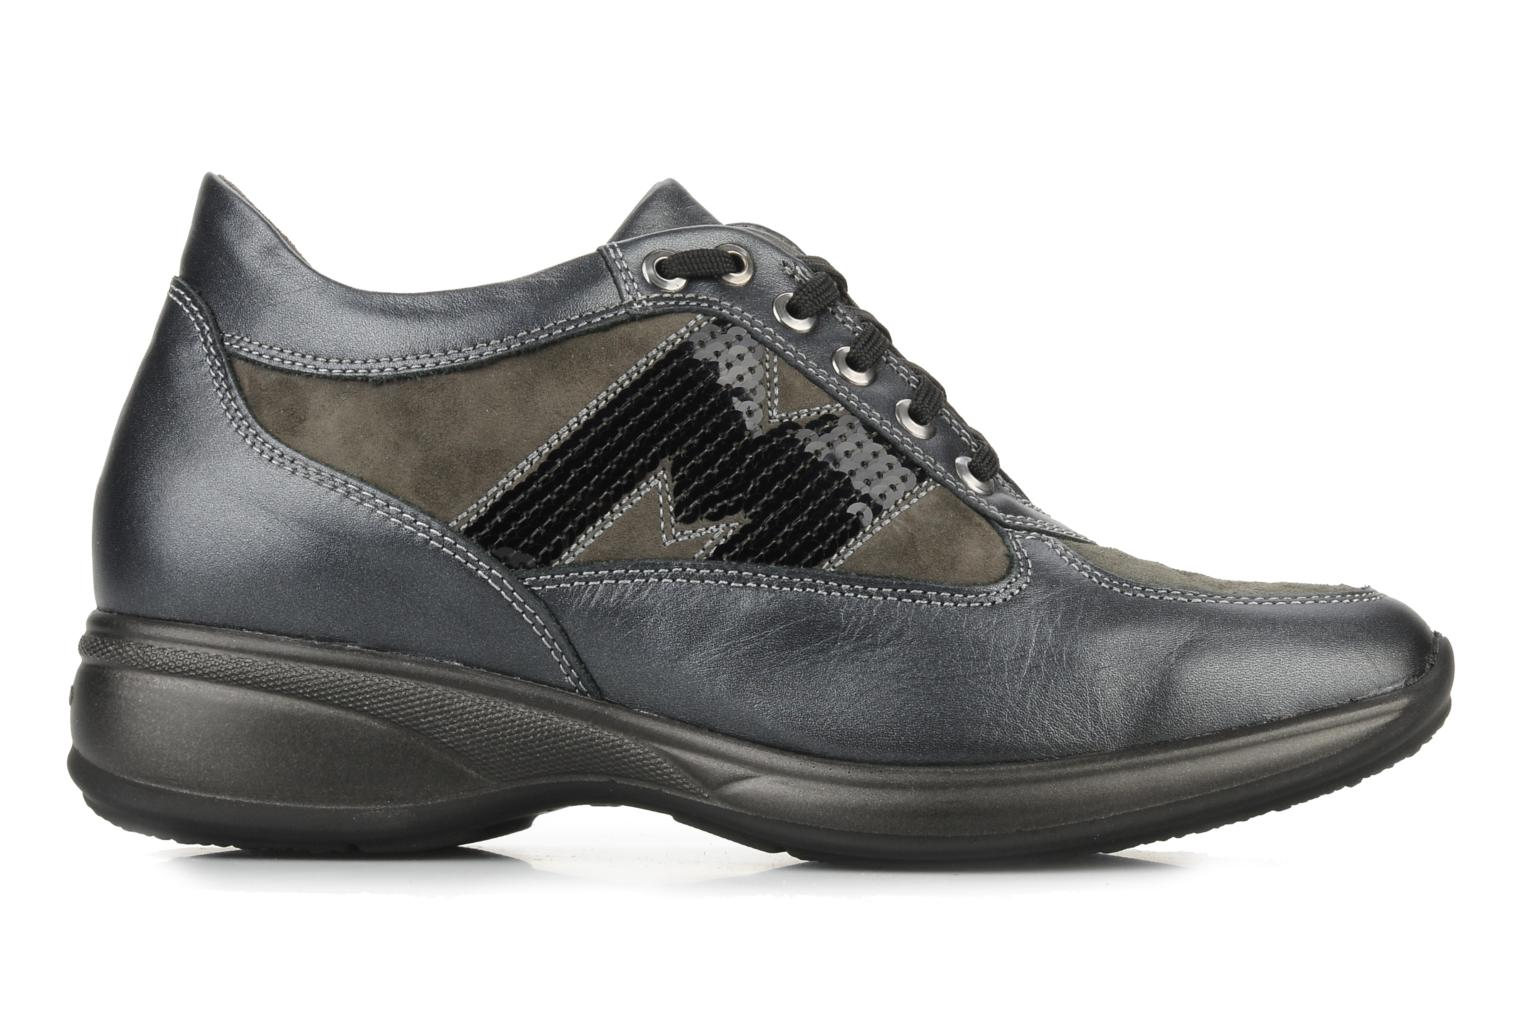 Melluso Dongy Lace-up shoes in Grey at Sarenza.co.uk (73836)